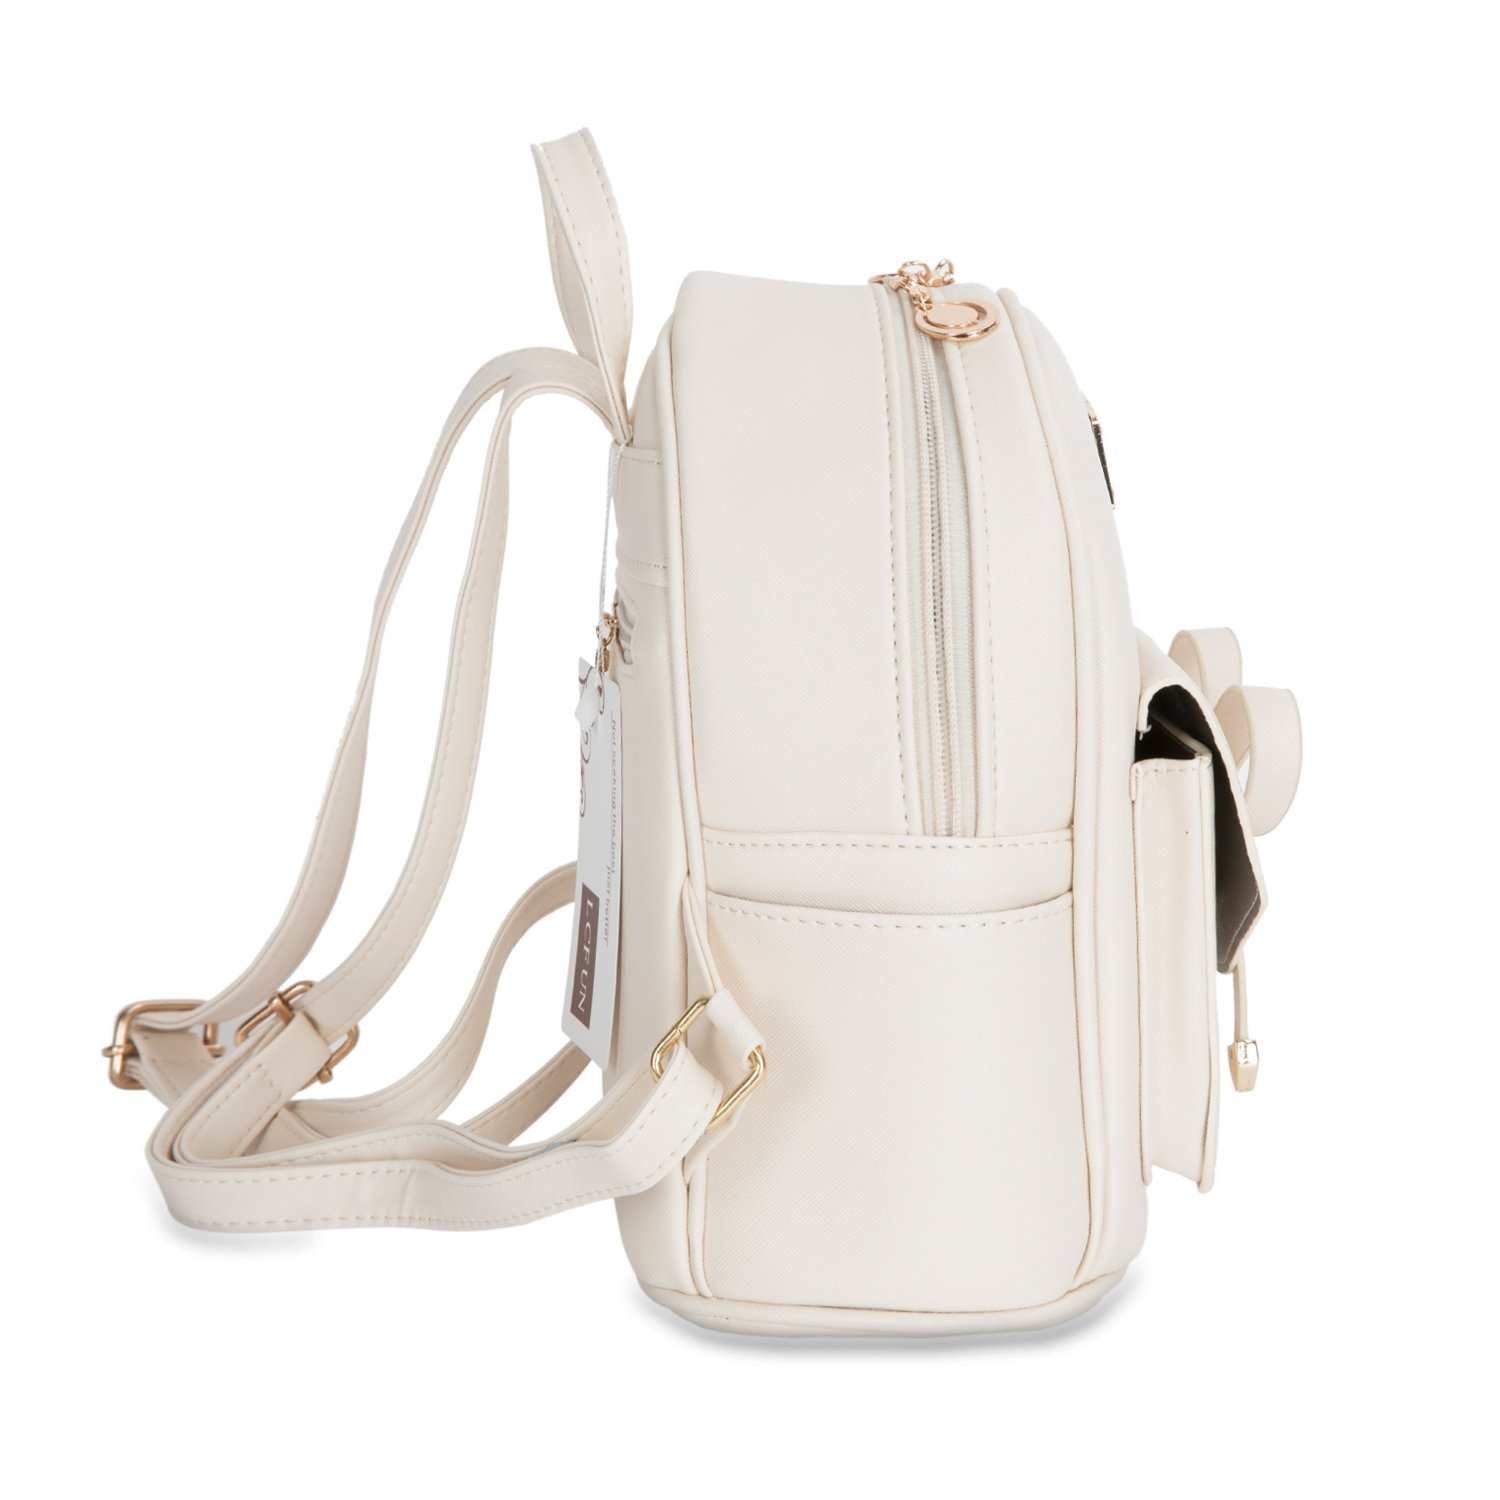 52b707455f Cute Mini Leather Backpack Fashion Small Daypacks Purse for Girls and Women